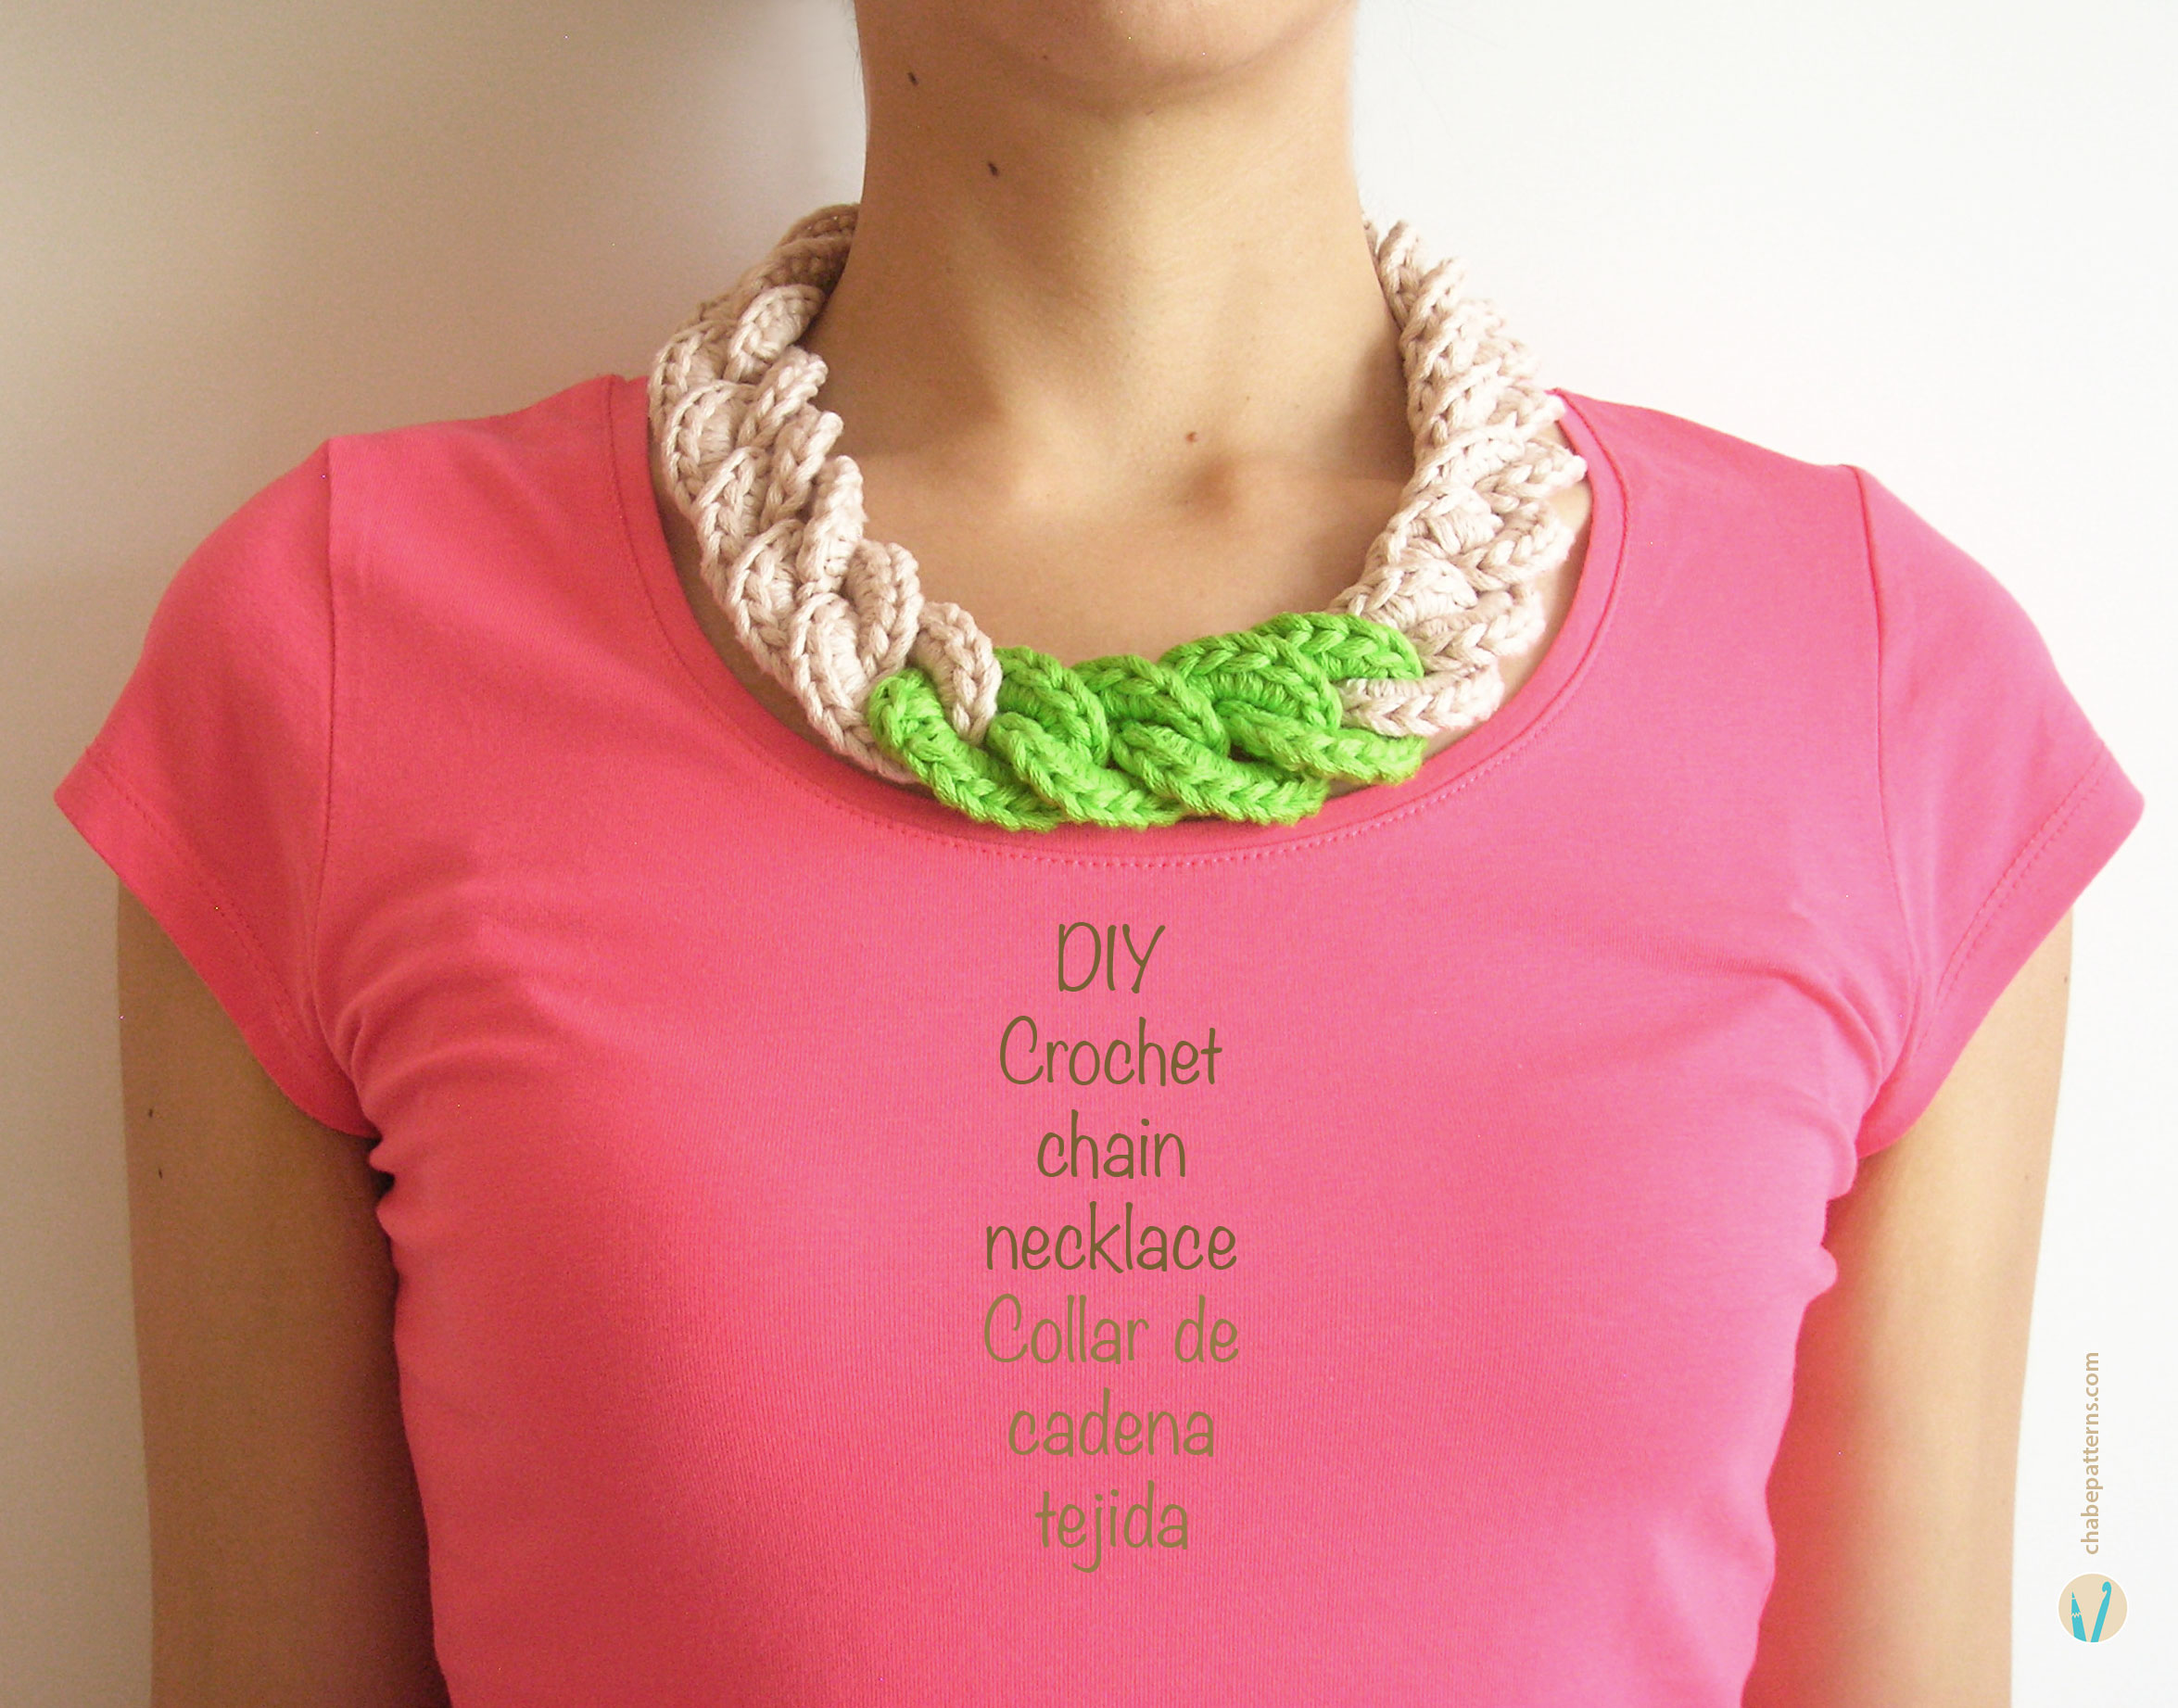 Crochet Stitches Australia : Crochet chain necklace / Collar de cadena tejida Chabepatterns